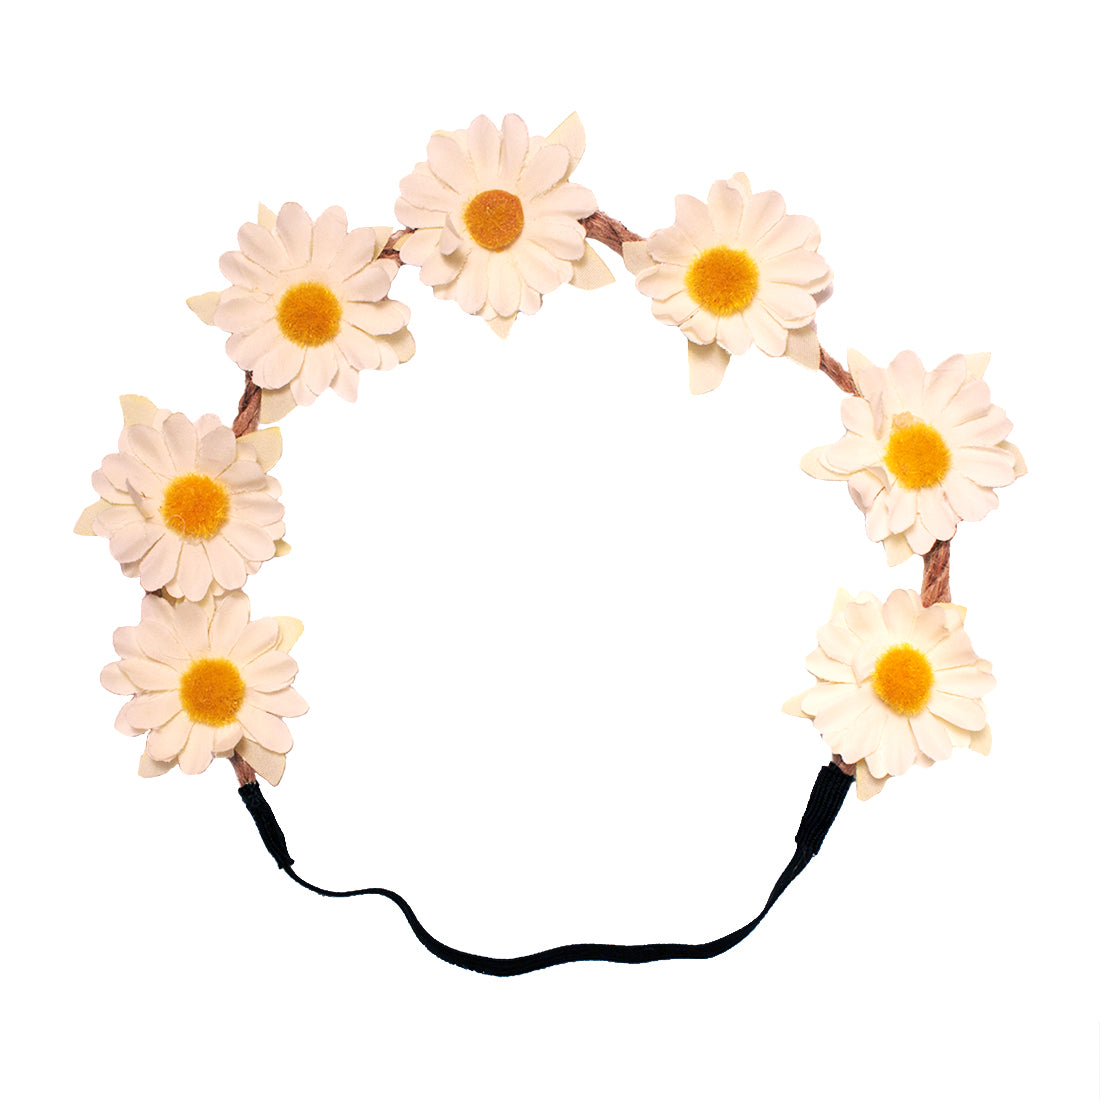 Mia® Flower Halo Headband - cream Daisies - by #MiaKaminski #Mia #MiaBeauty #Beauty #Hair #HairAccessories #headbands #lovethis #love #life #woman #flowerhalo